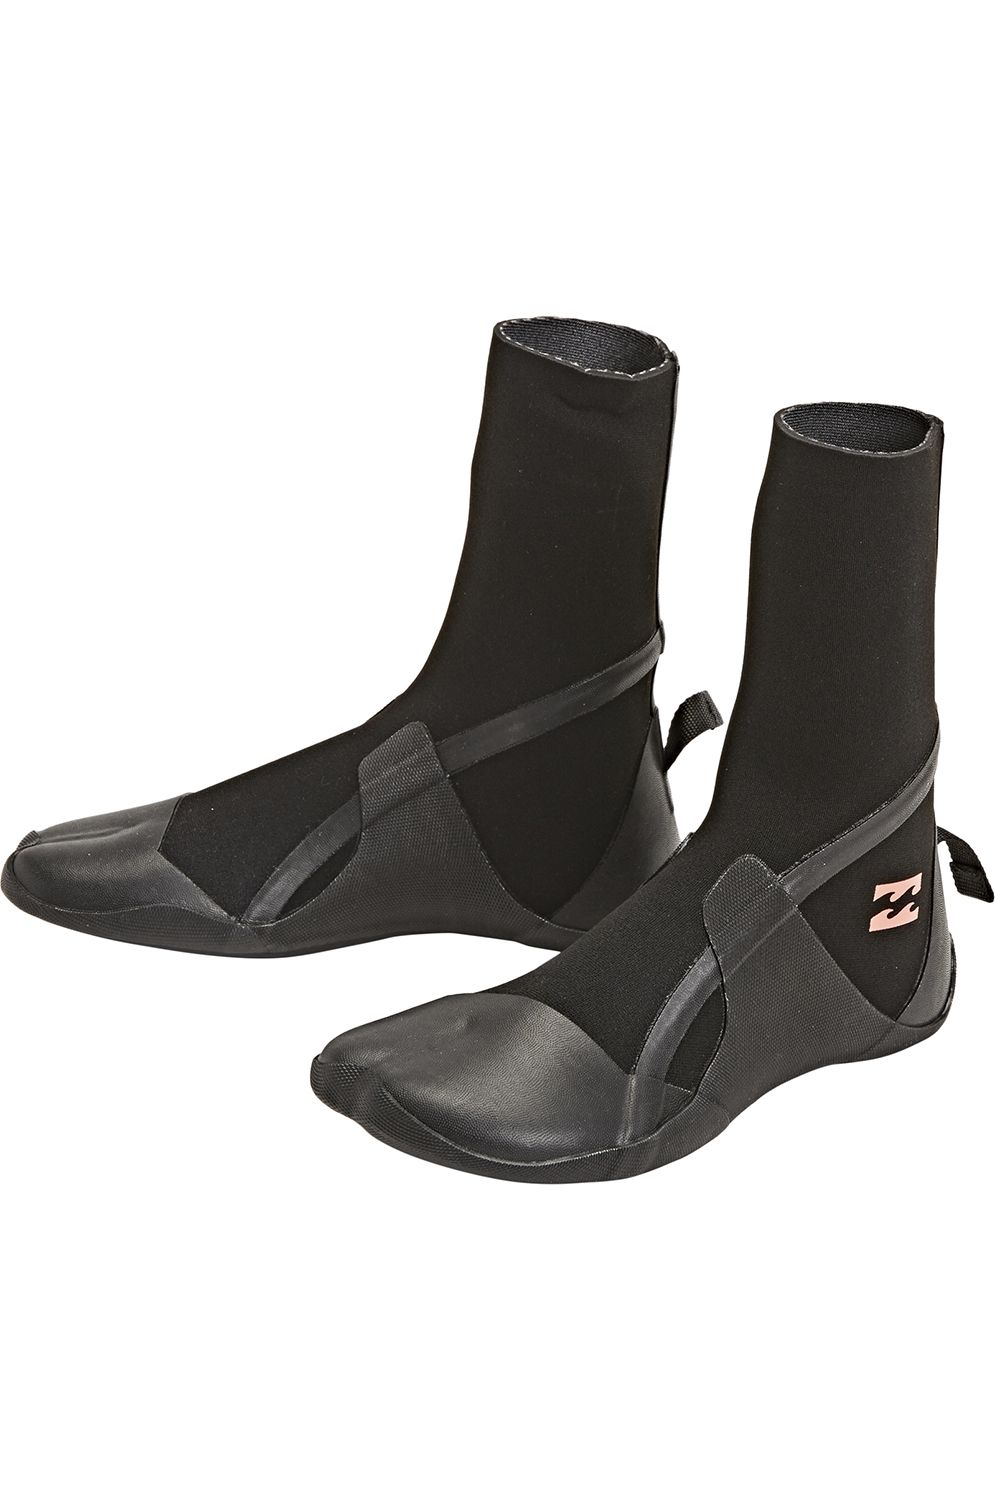 Botas Neoprene Billabong 3MM SYNERGY HS WMS Black